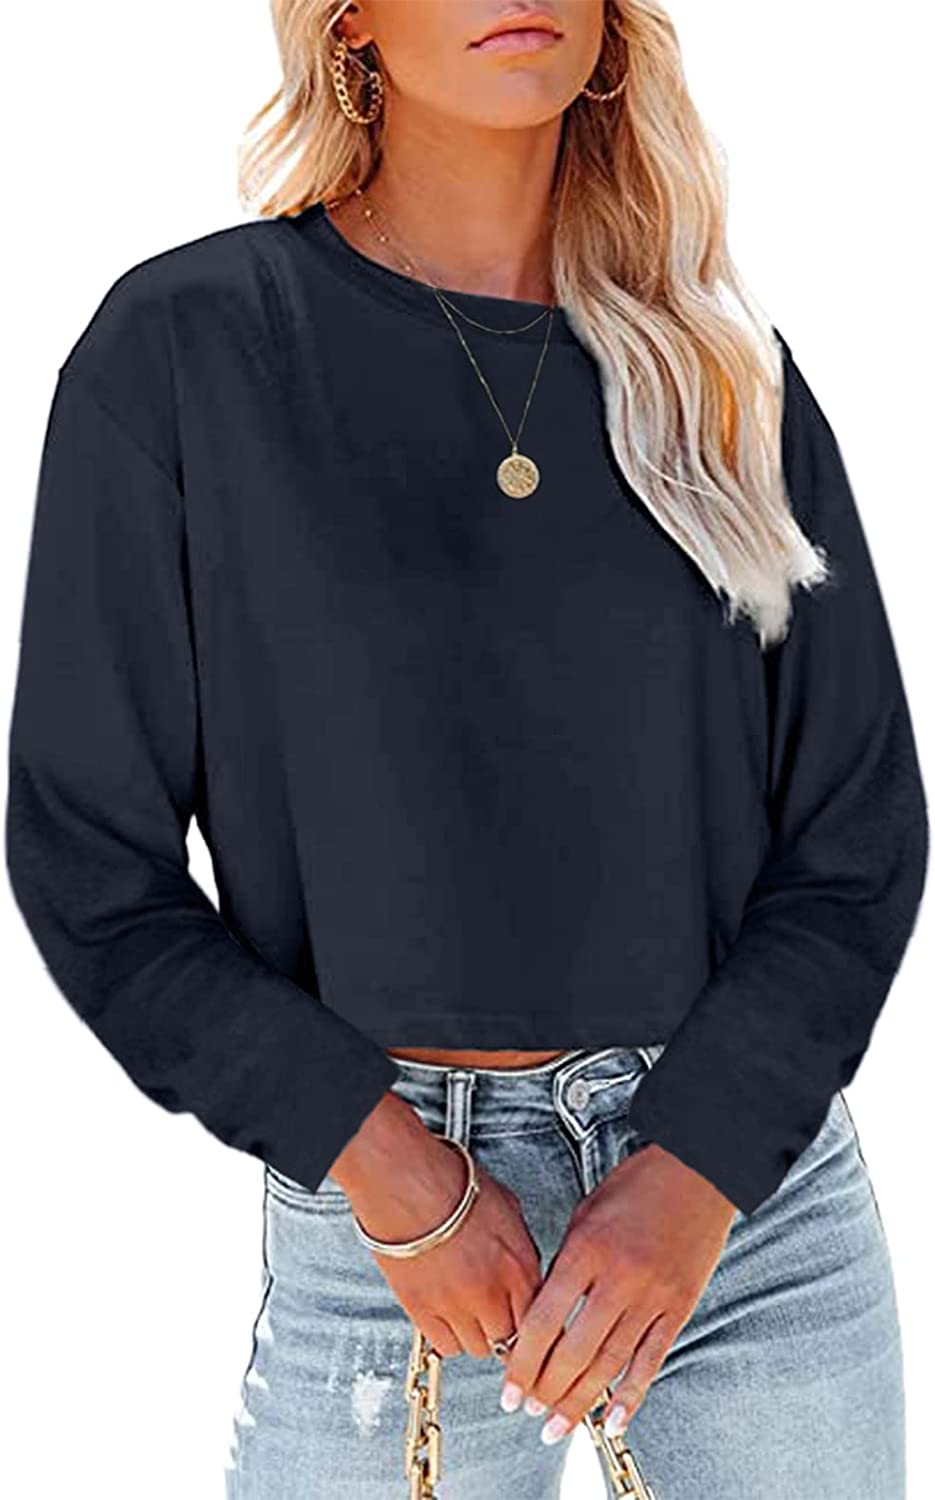 Women's Long Sleeve Casual Crewneck Striped Color Block Knitted Sweater Loose Oversized Pullover Jumper Tops